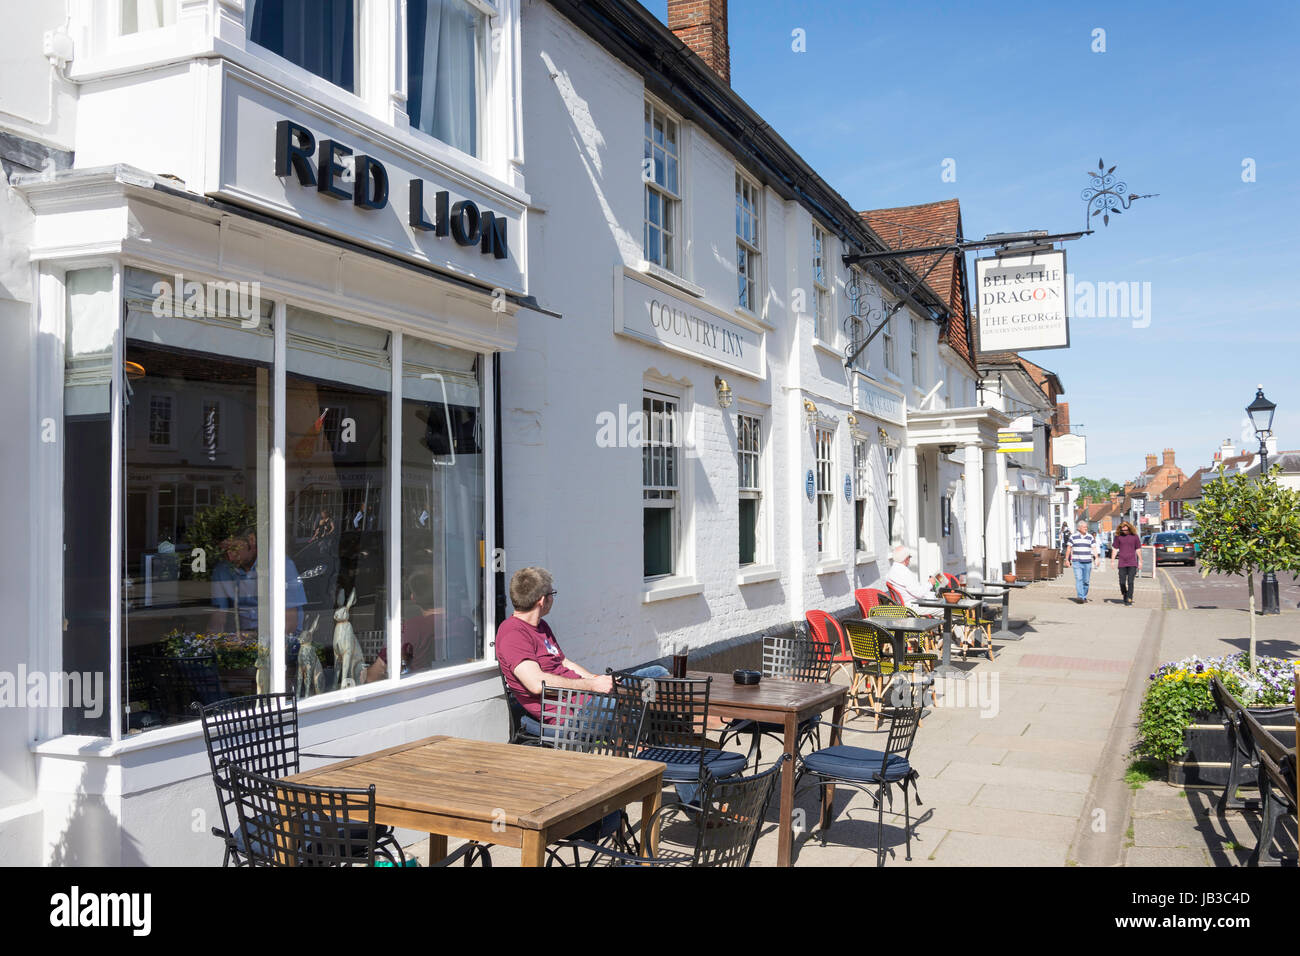 The Red Lion & Bell and the Dragon Pubs, High Street, Odiham, Hampshire, England, United Kingdom - Stock Image